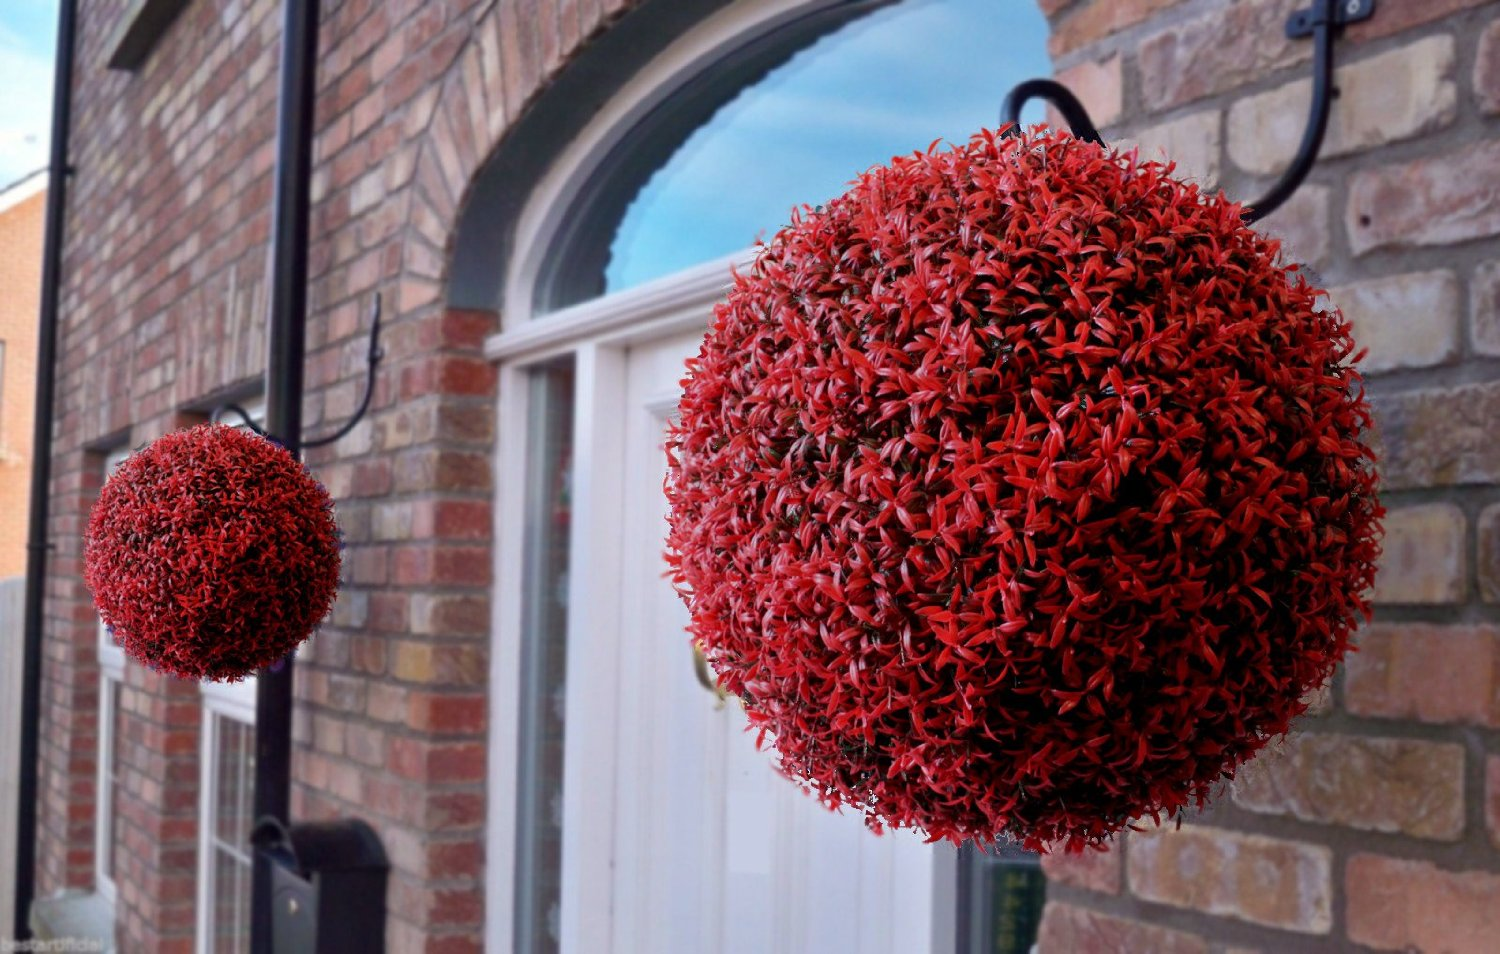 40cm Topiary Balls Part - 27: ... 40cm Red Rosemary Topiary Balls. Red Rosemary Artificial Ball